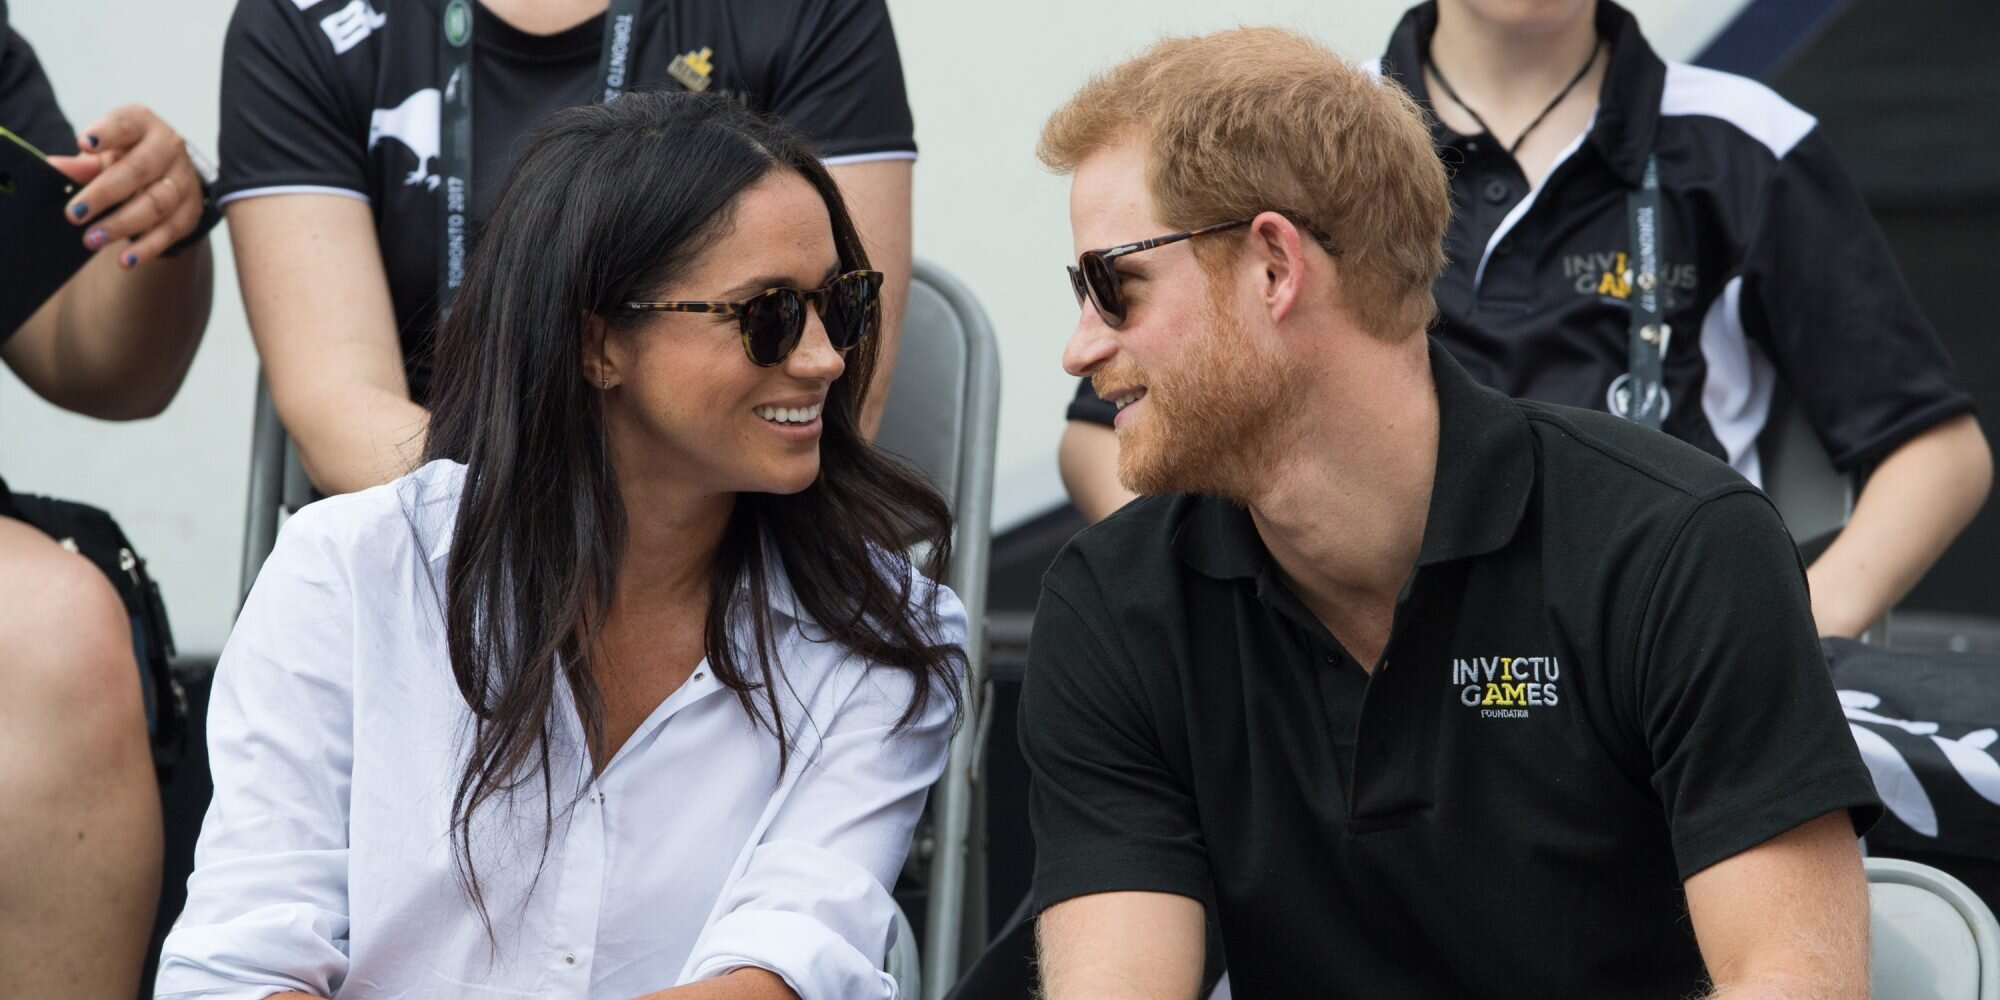 Meghan Markle and Prince Harry Are Coming to New York City This Weekend